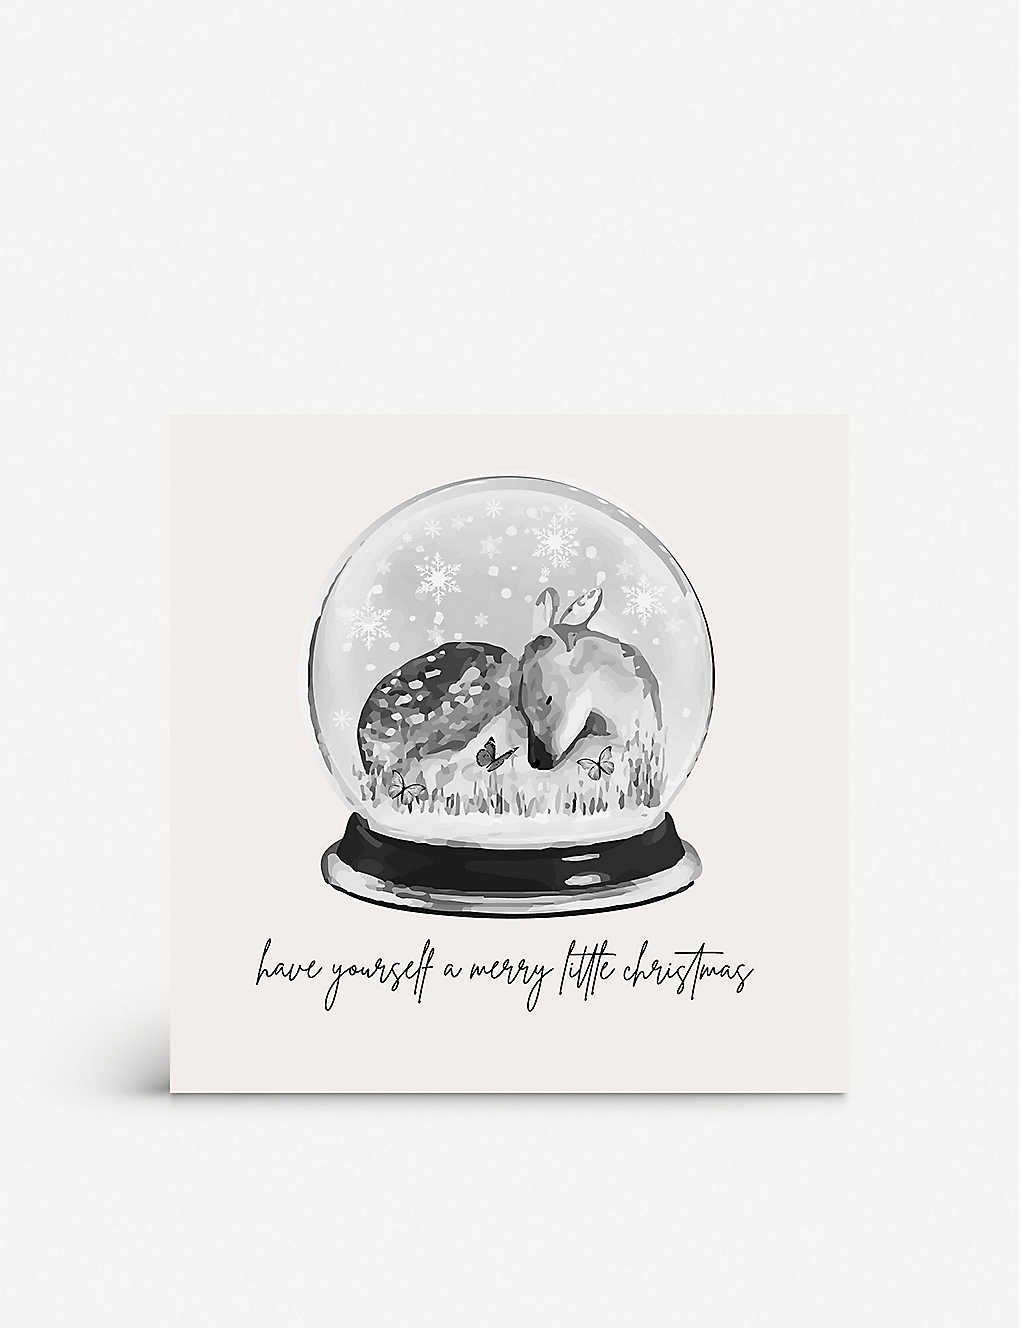 FIVE DOLLAR SHAKE: Have Yourself a Merry Little Christmas greetings card 17cm x 17cm